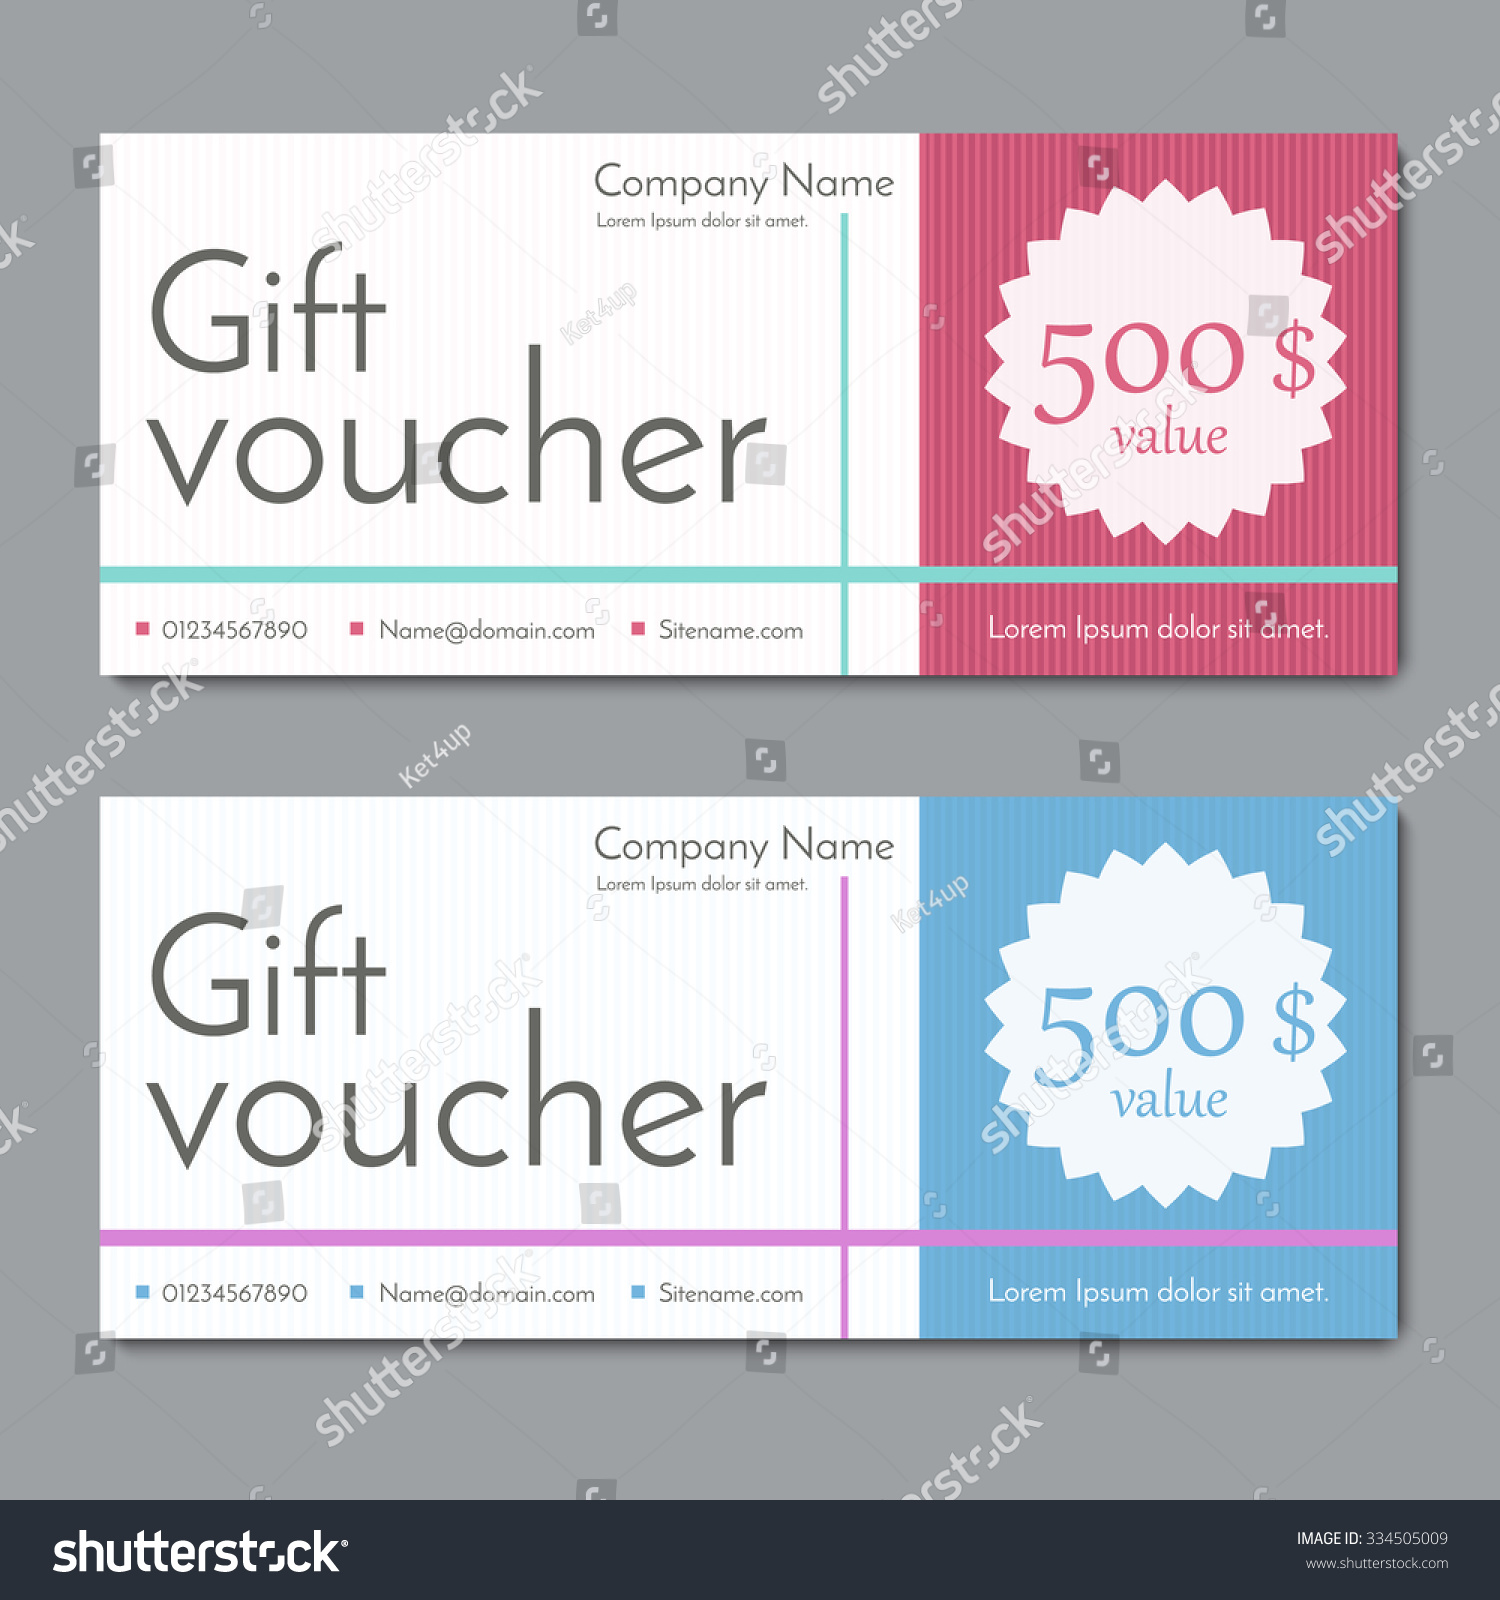 Doc534249 Gift Voucher Examples Gift Voucher Examples Free – Examples of Vouchers